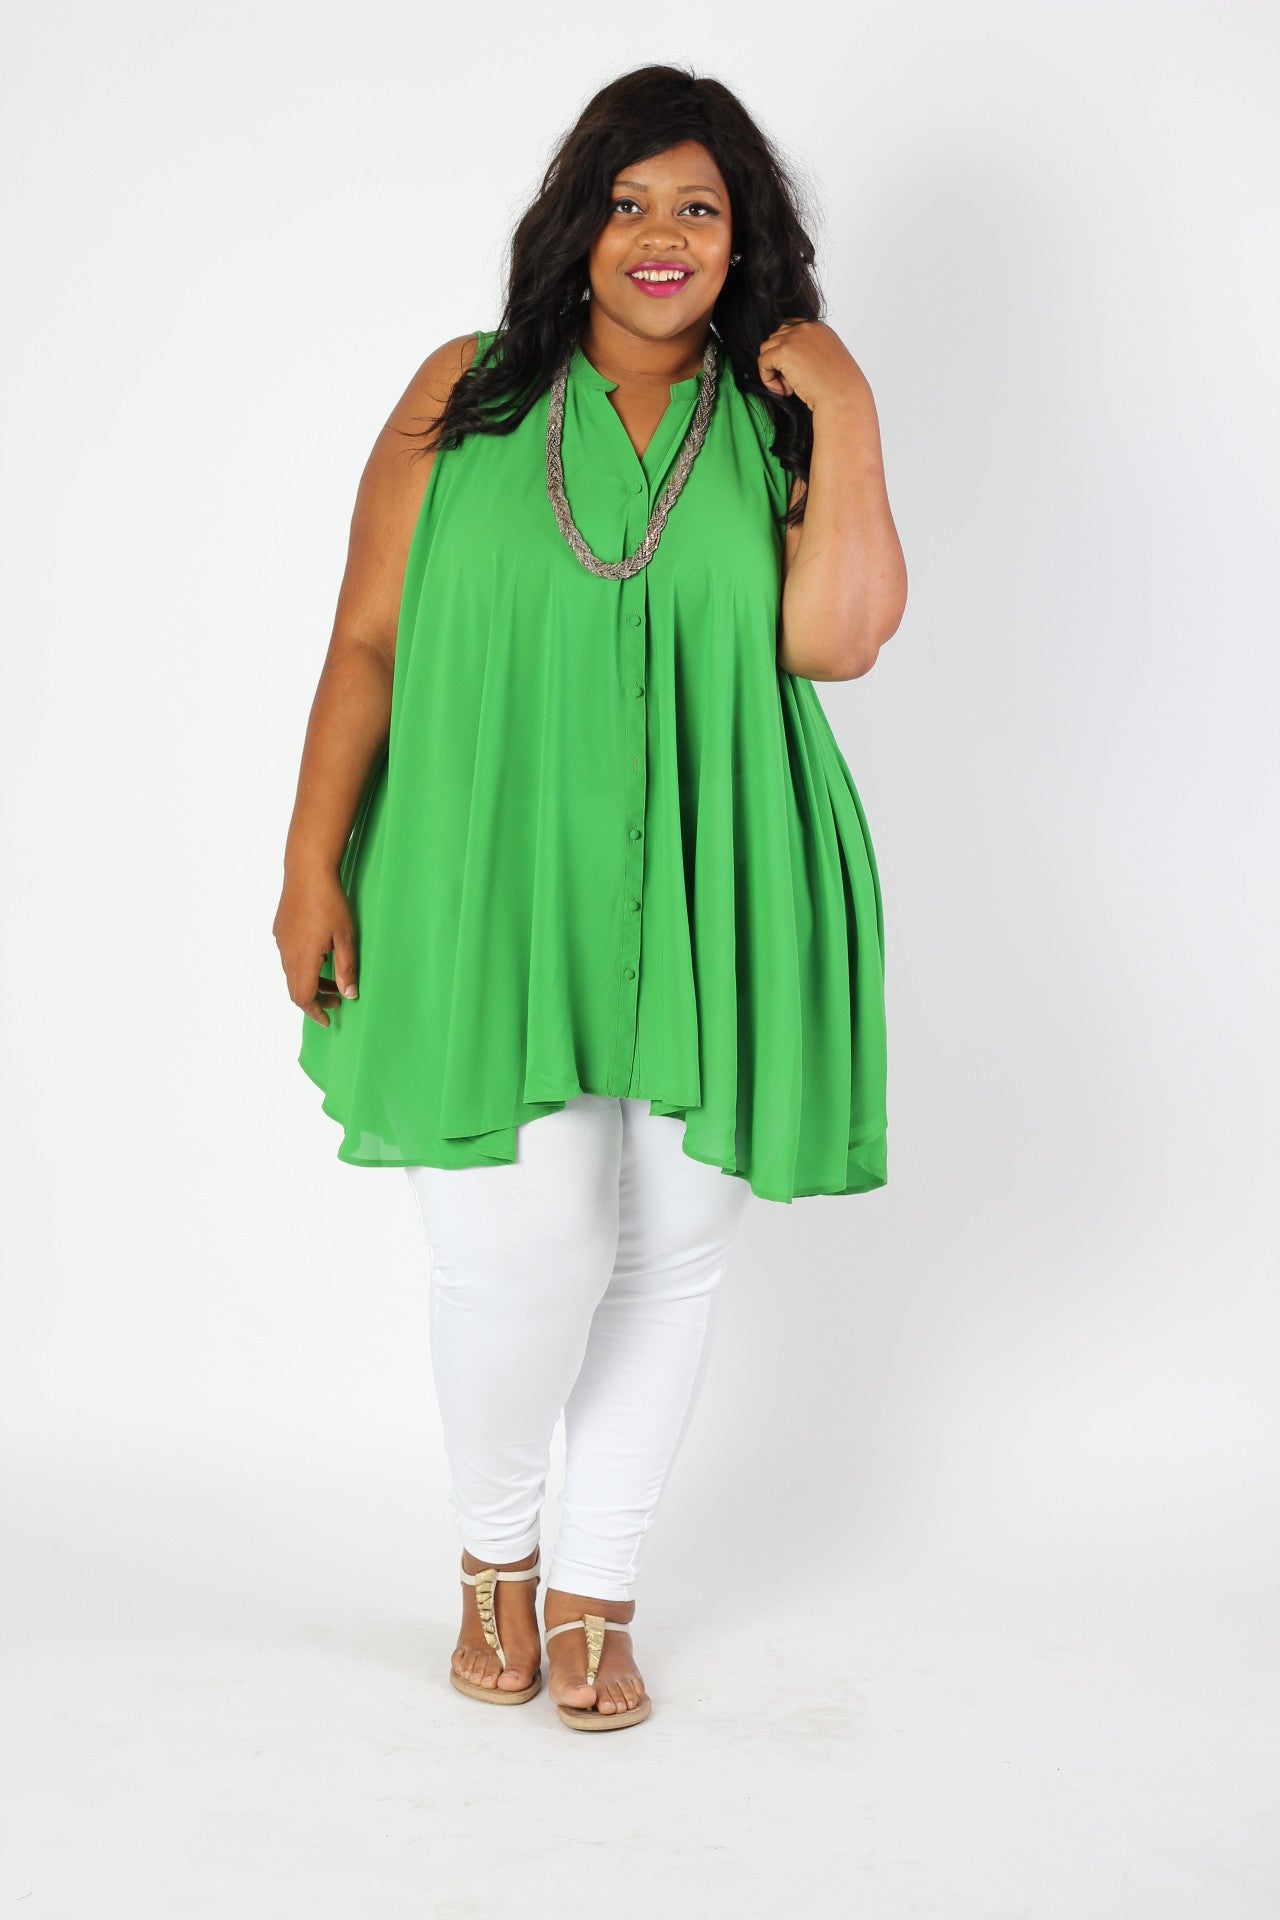 The best part of summertime is the easiness of fashion... which is why we're absolutely in love with this tunic! This button up tunic has a classic cut while the bright color keeps things fun and casual. You'll find that it's easy to pair with wedges or sandals, and everything in between. 55% Cotton, 45% Polyester Hand wash cold Hang to dry Imported Front length Back length Arm hole Size: 18/20 34